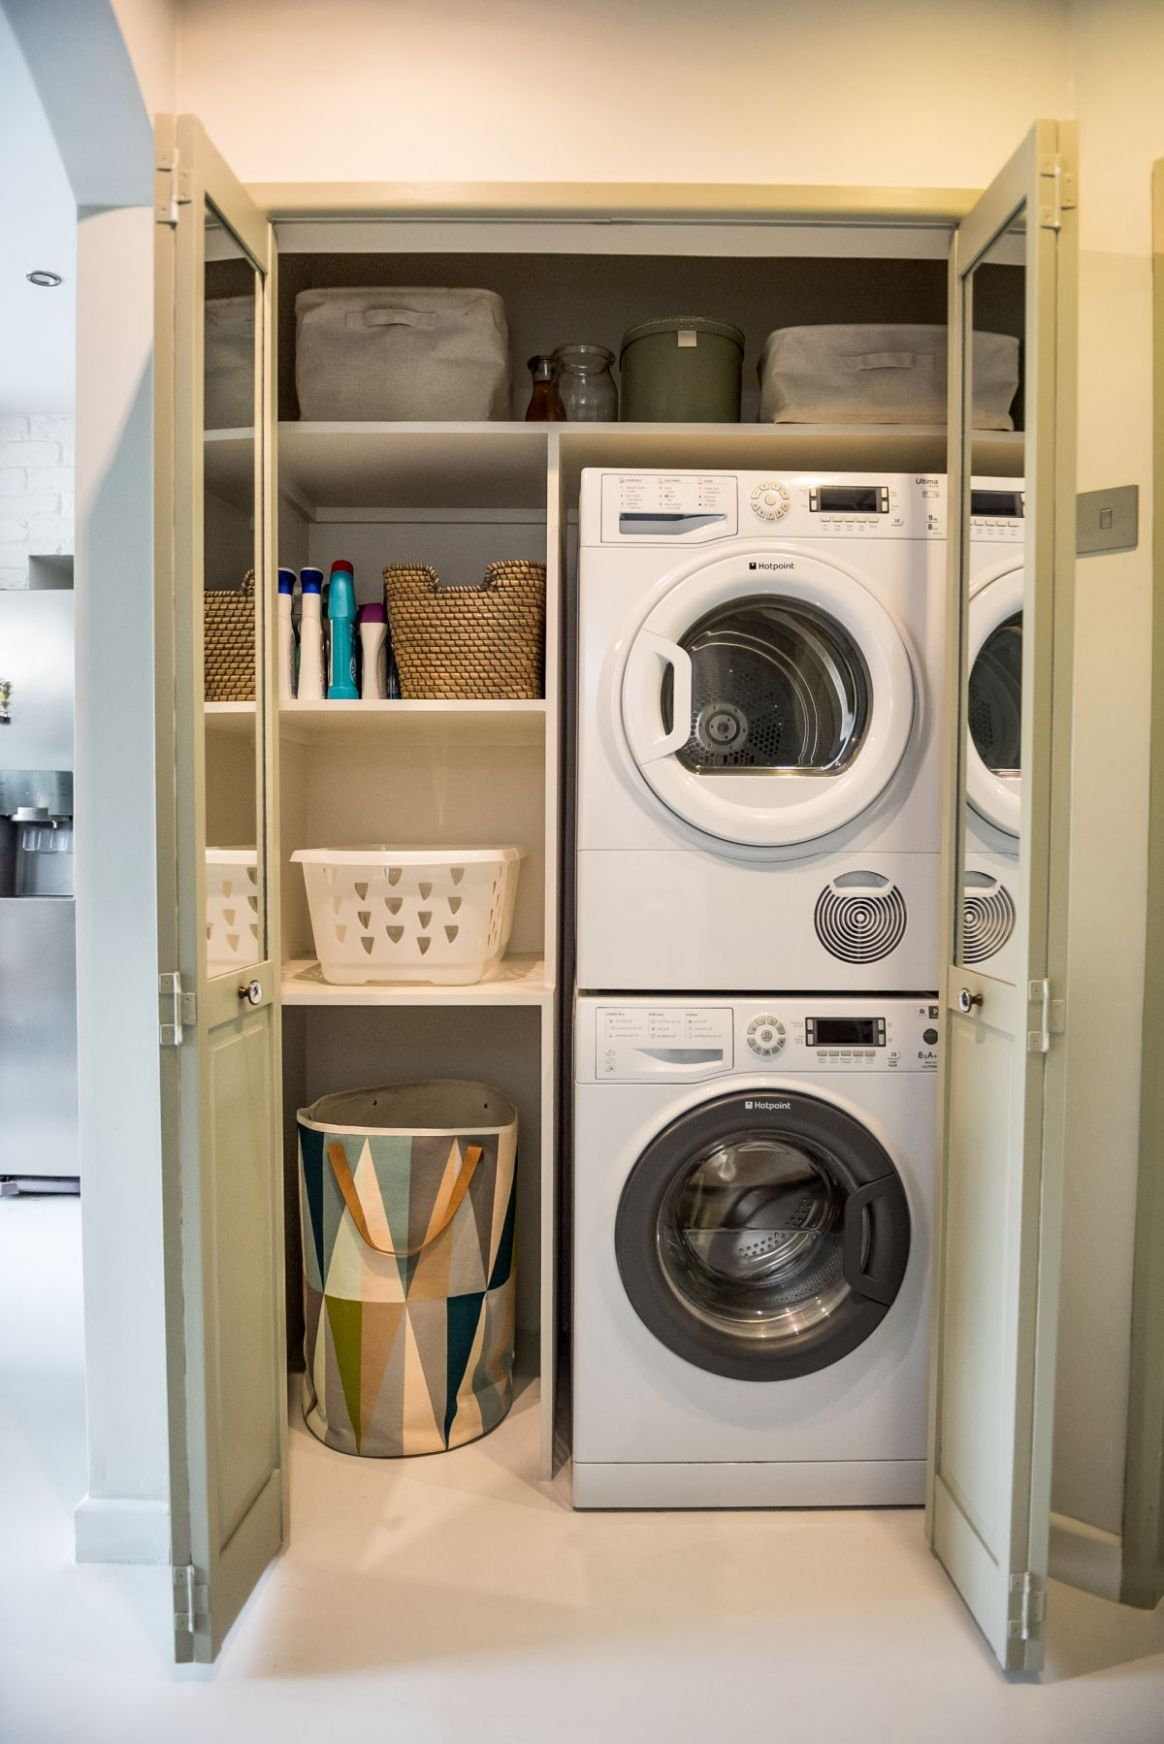 Small utility room ideas: 9 clever ways to stretch your space ..